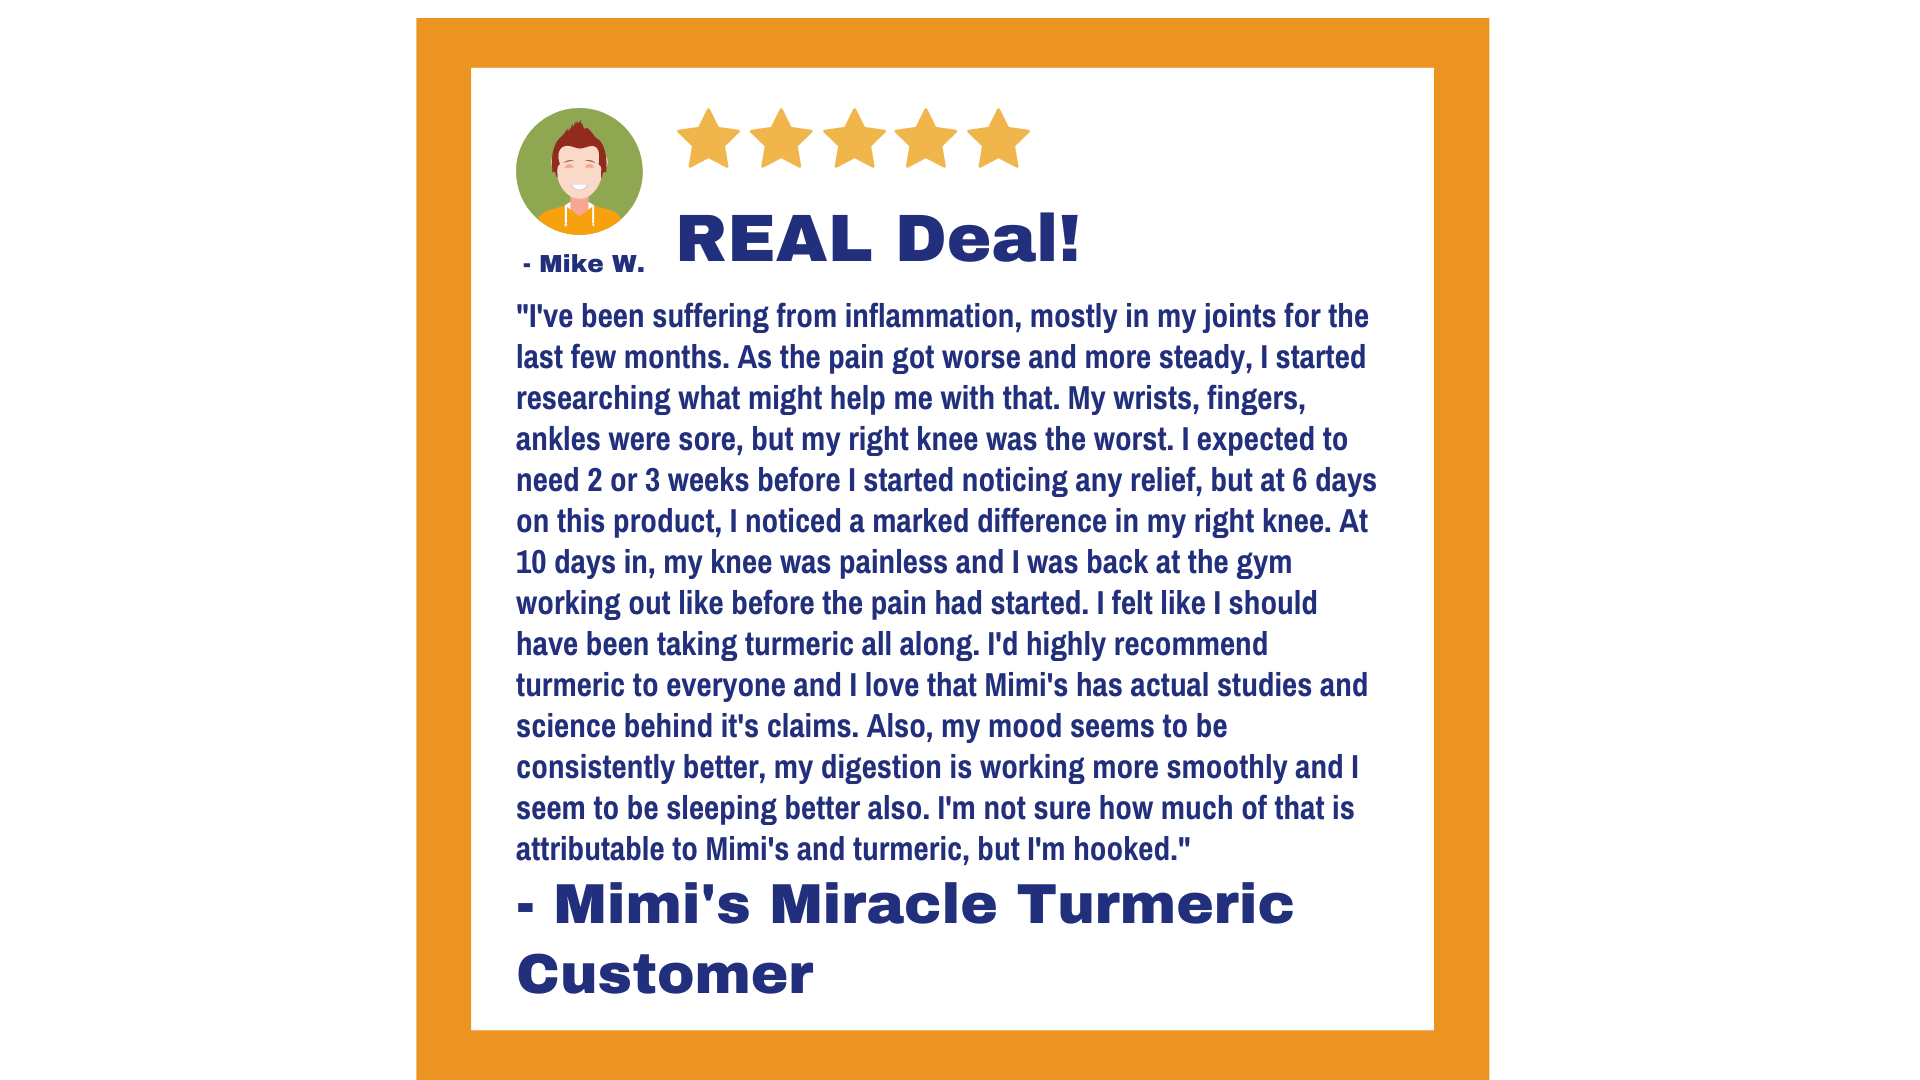 Mimi's Miracle Turmeric Review